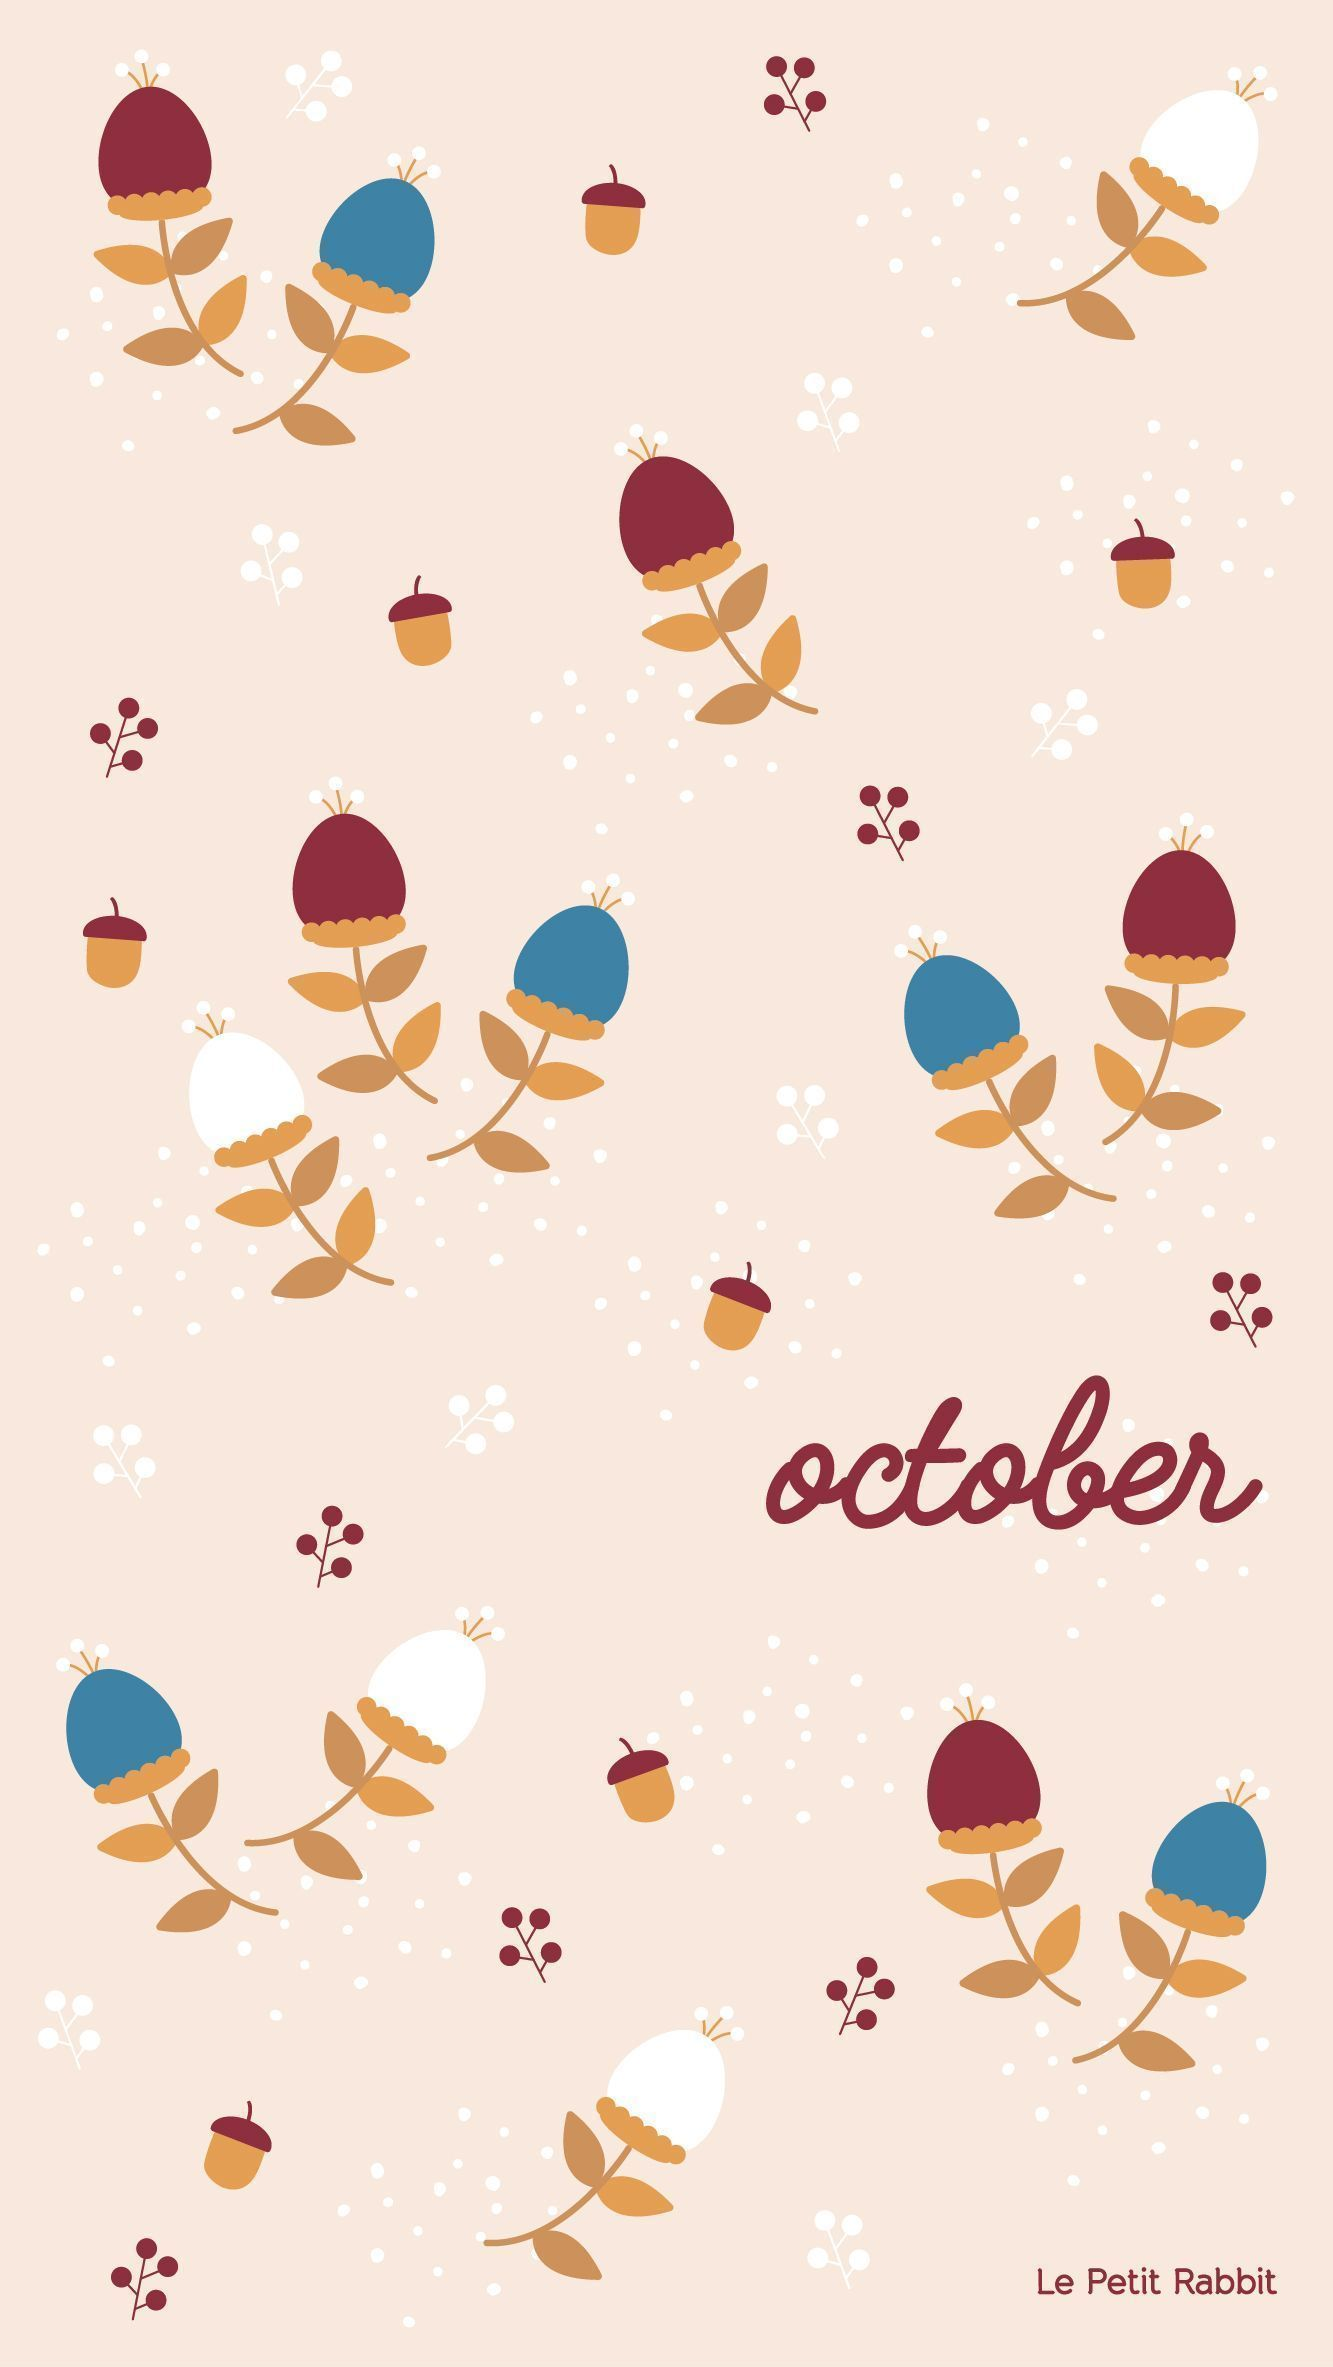 October wallpaper iPhone #octoberwallpaperiphone October wallpaper iPhone #octoberwallpaperiphone October wallpaper iPhone #octoberwallpaperiphone October wallpaper iPhone #octoberwallpaper October wallpaper iPhone #octoberwallpaperiphone October wallpaper iPhone #octoberwallpaperiphone October wallpaper iPhone #octoberwallpaperiphone October wallpaper iPhone #octoberwallpaperiphone October wallpaper iPhone #octoberwallpaperiphone October wallpaper iPhone #octoberwallpaperiphone October wallpape #octoberwallpaper